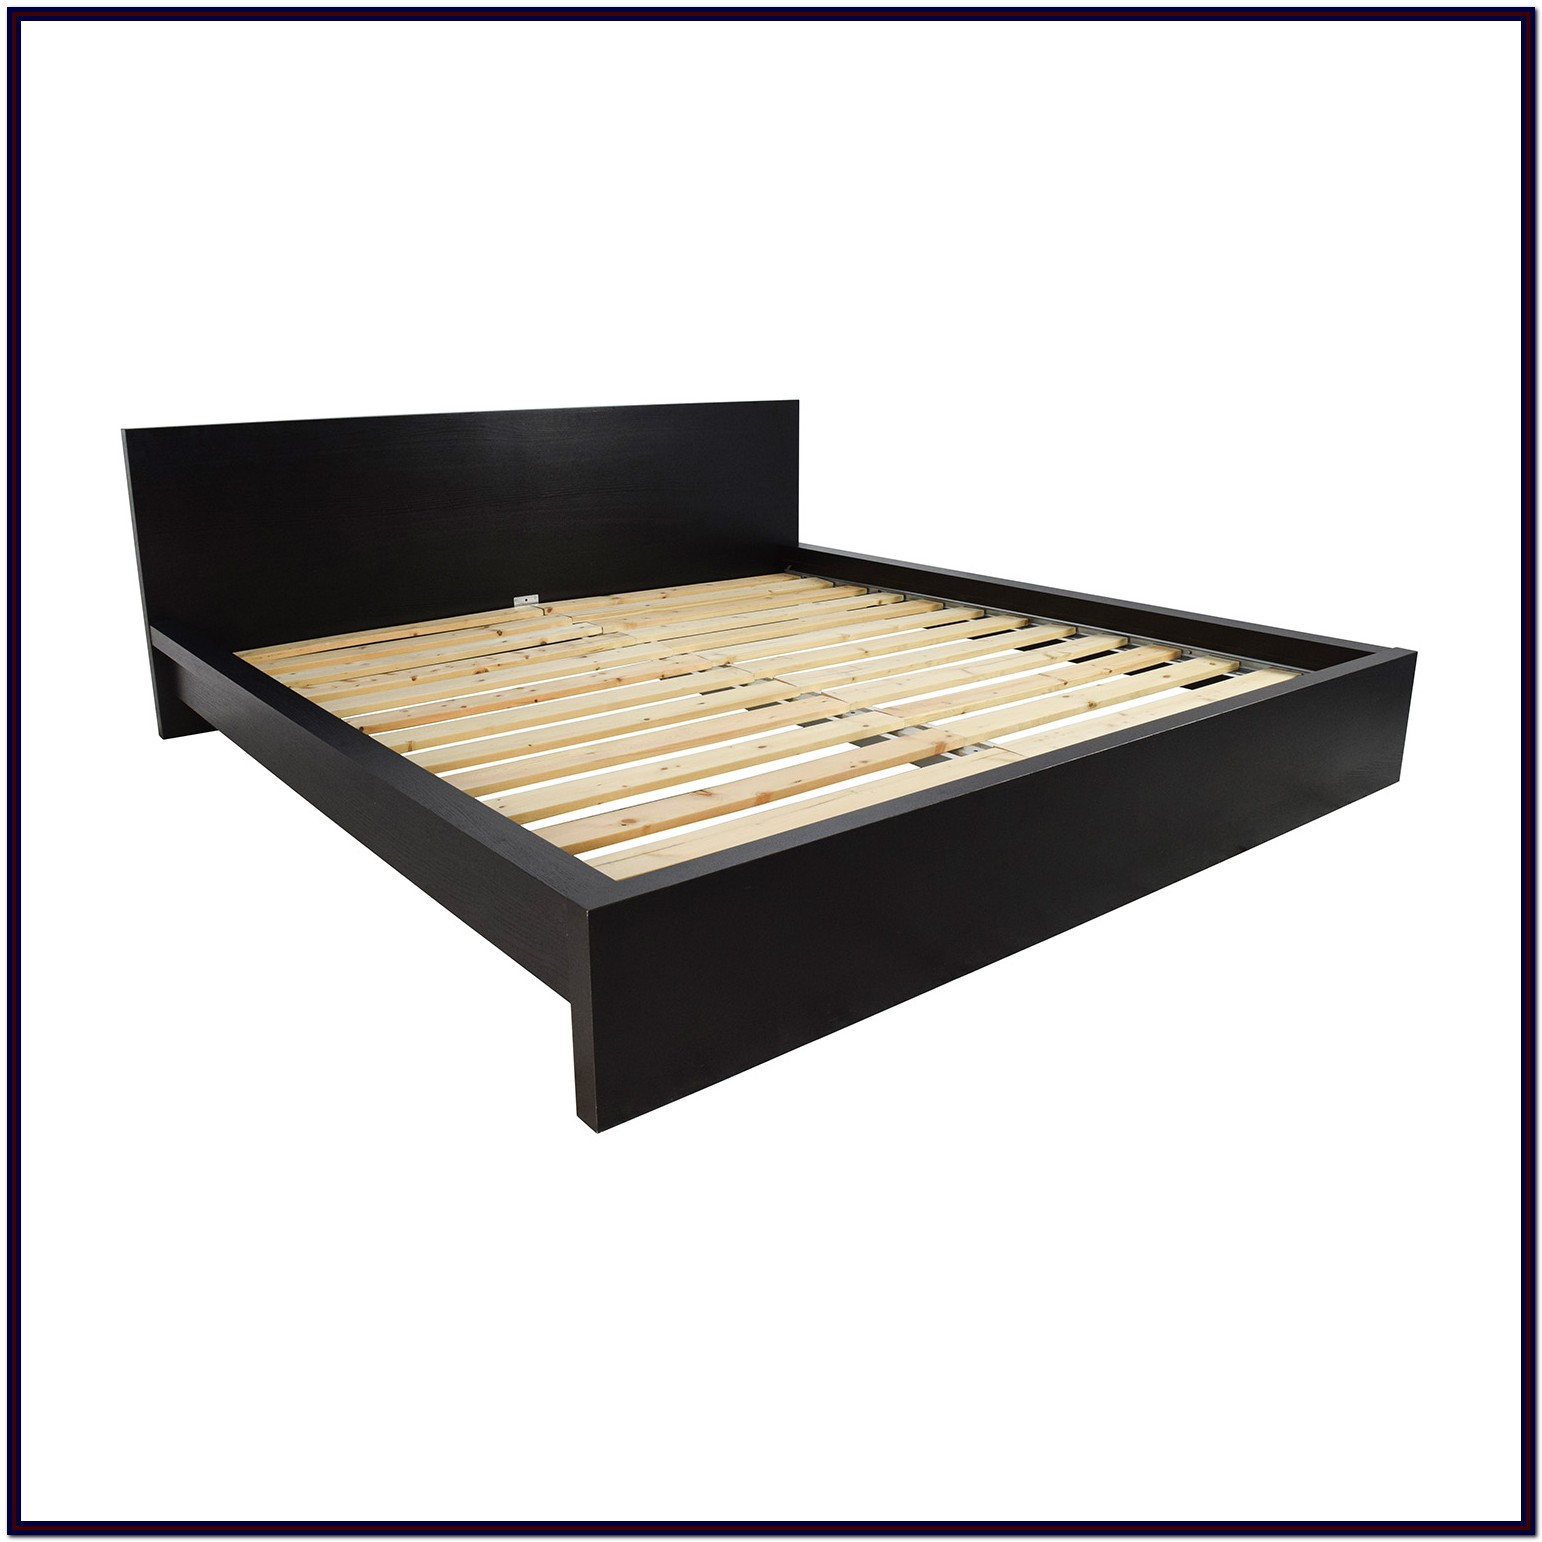 Ikea Malm Queen Bed Frame Dimensions